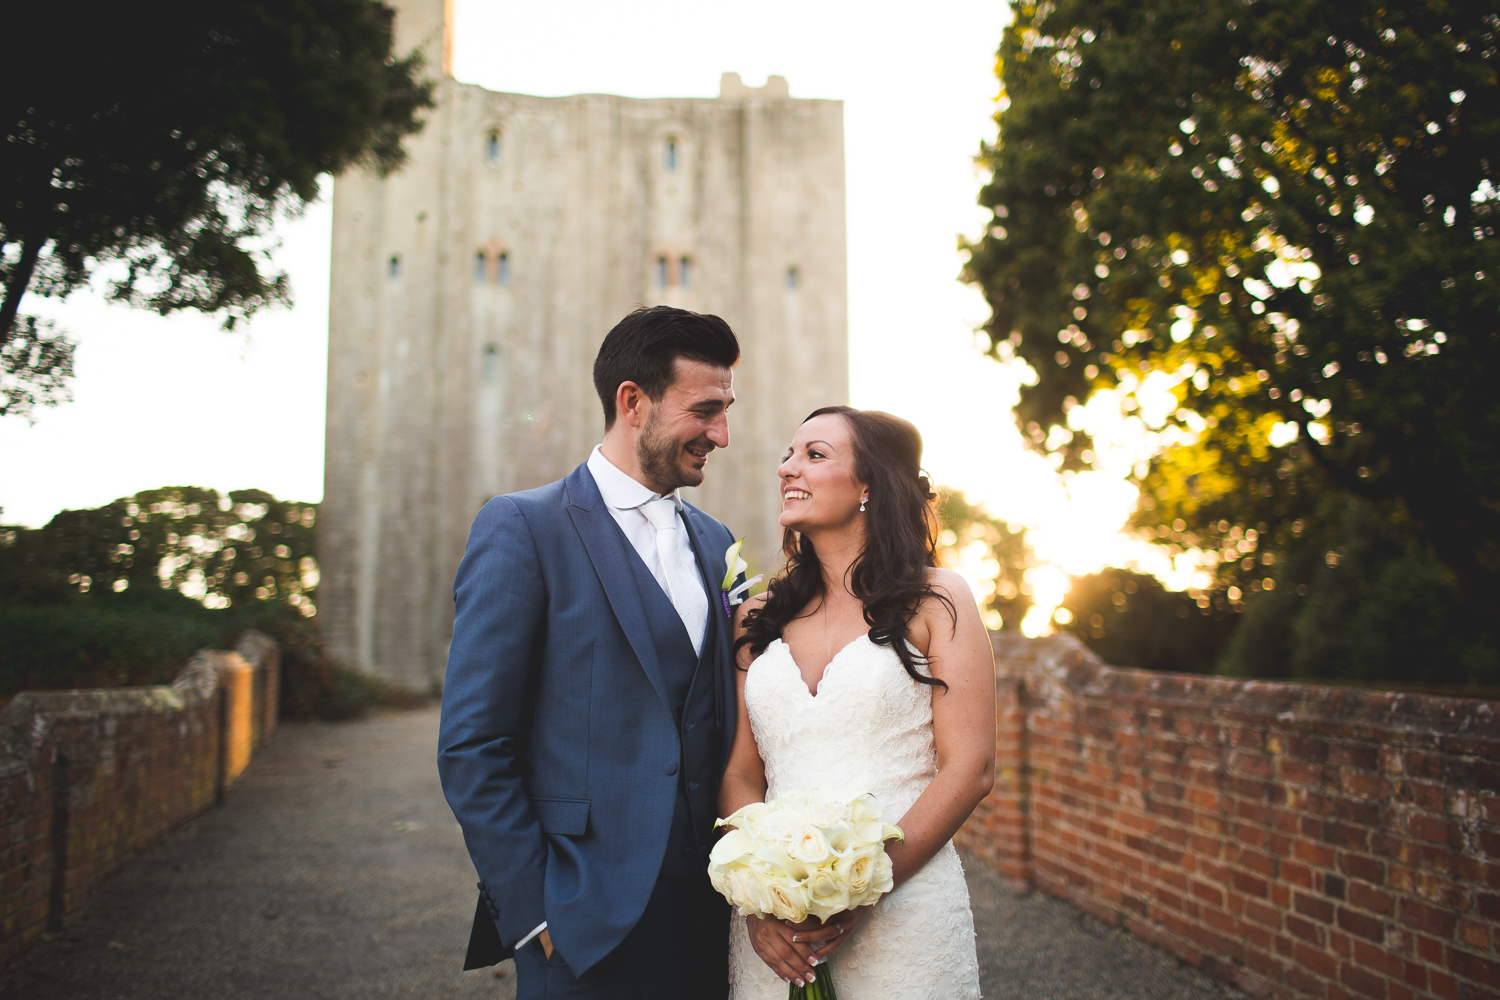 Surrey Wedding Photographer Hedingham Castle092.jpg